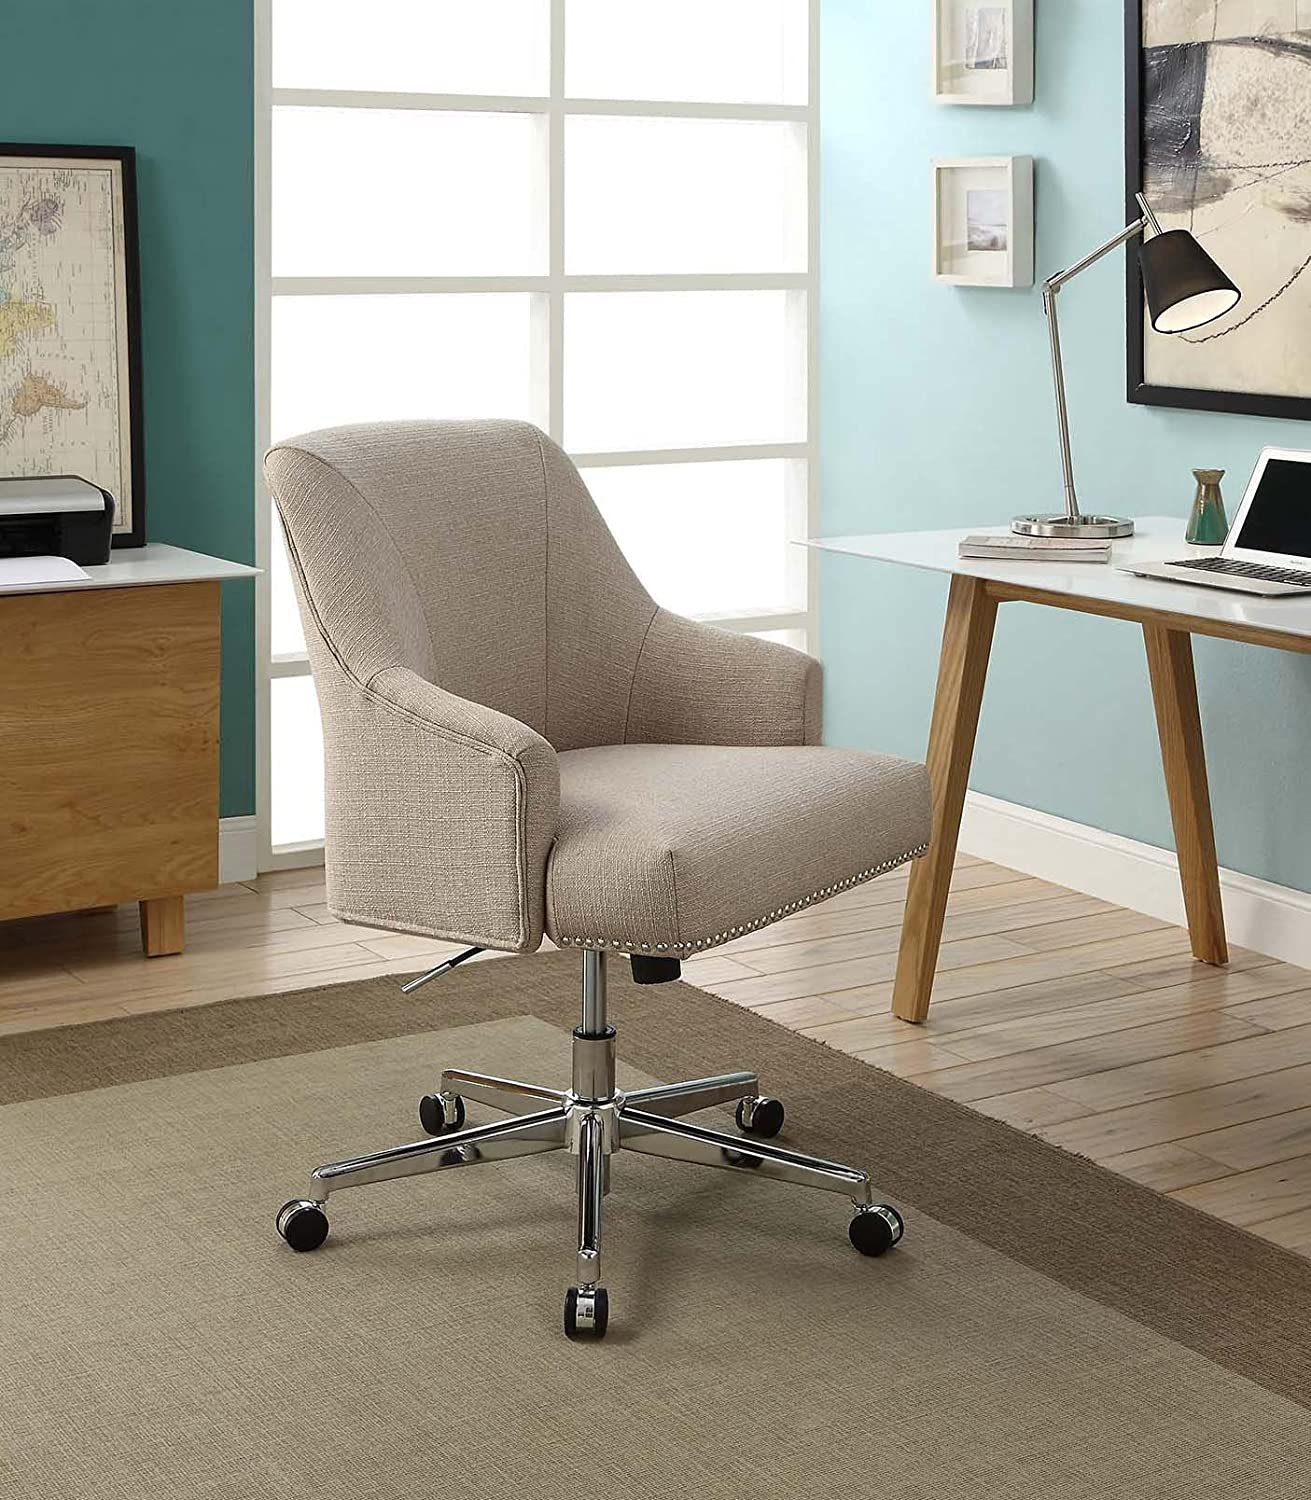 Tan Serta Office Chair